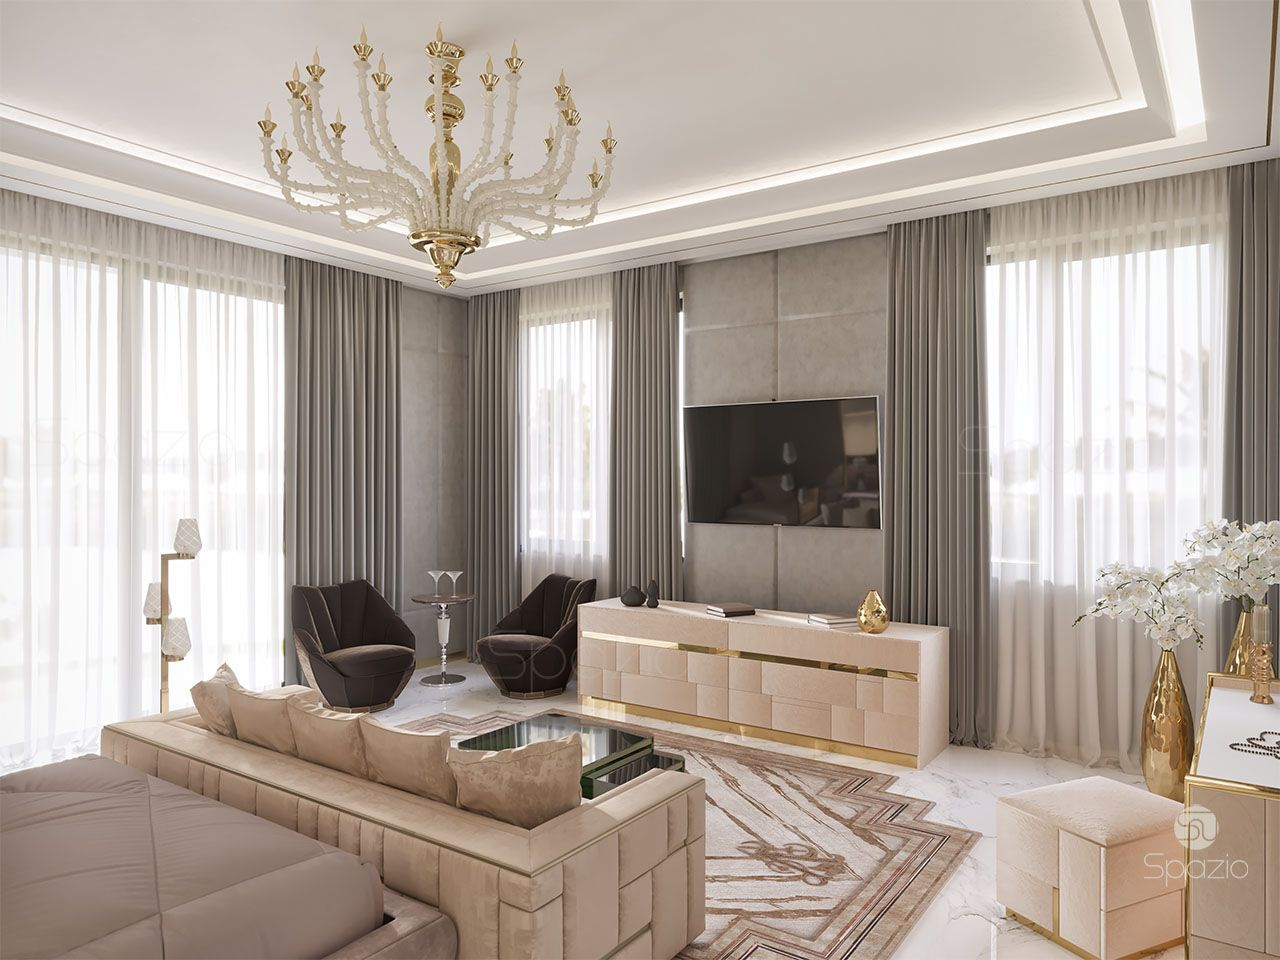 luxury master bedroom design dubai uae | Spazio